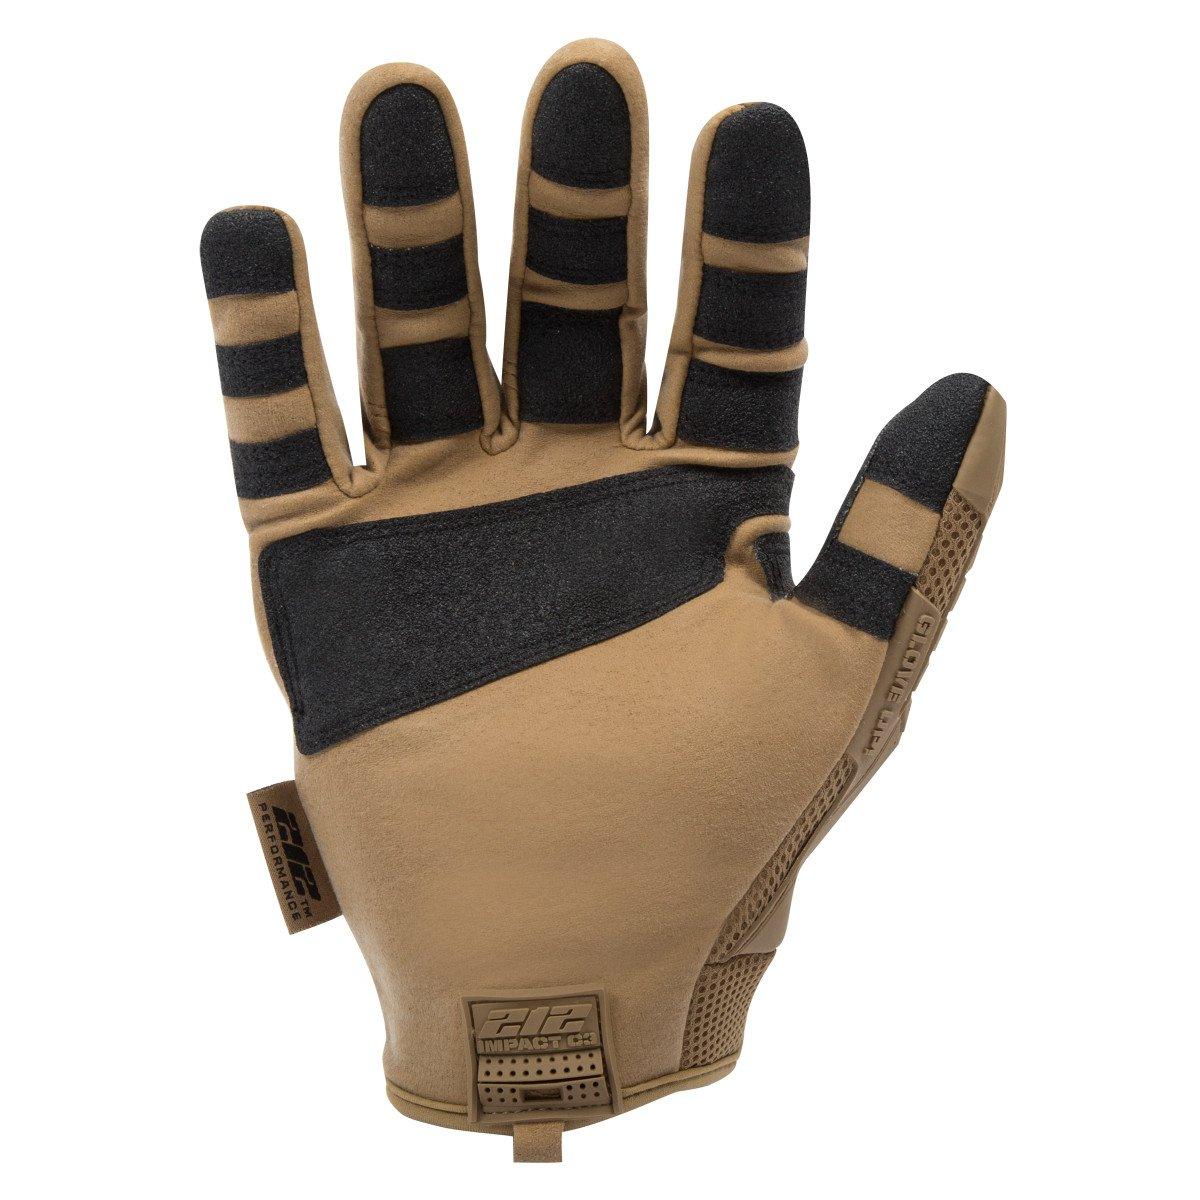 212 Performance Gloves IMPC3AM-70-010 Cut Resistant Impact Air Mesh Gloves (EN Level 3), Large by 212 Performance Gloves (Image #3)